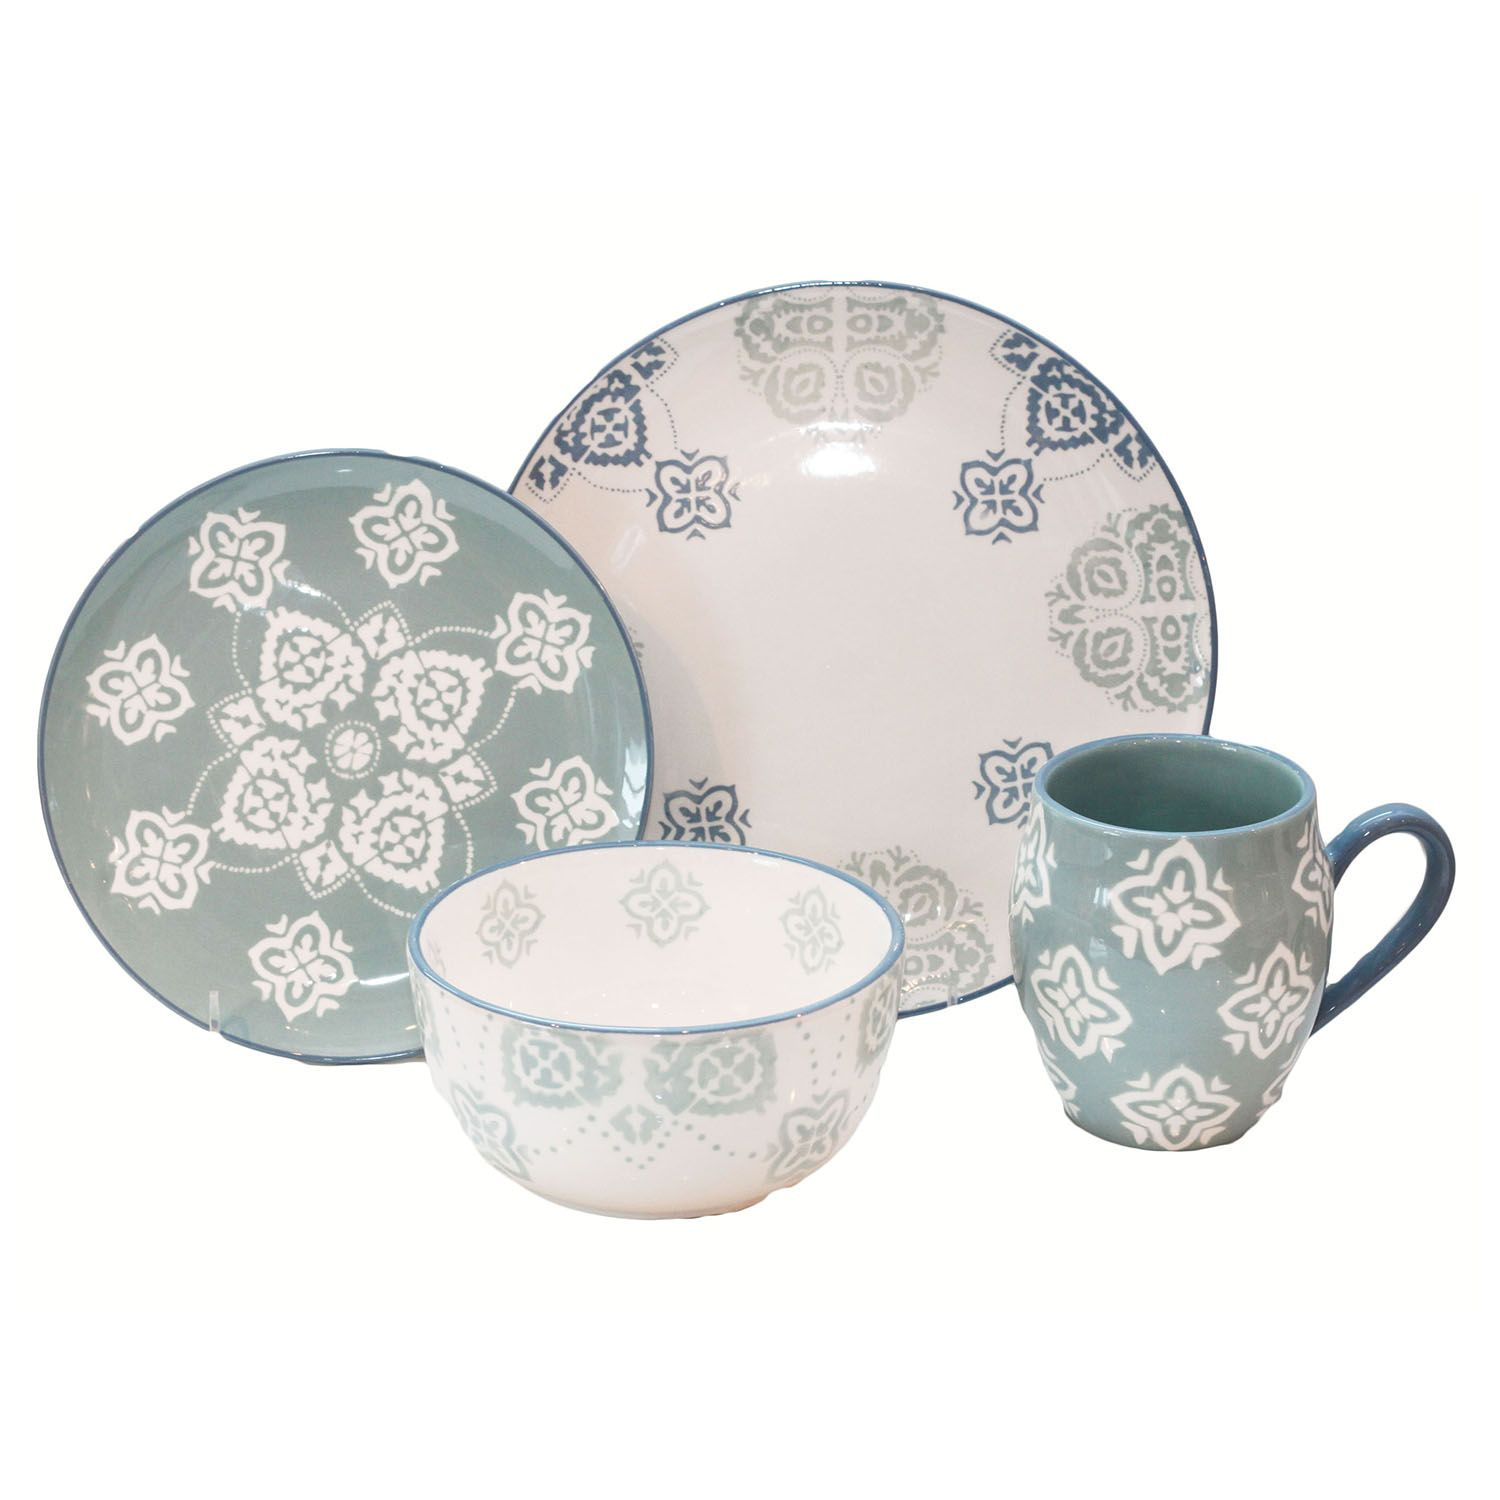 Baum Painterly 16-pc. Dinnerware Set  sc 1 st  Kohlu0027s & Baum Dinnerware u0026 Serveware Kitchen u0026 Dining | Kohlu0027s